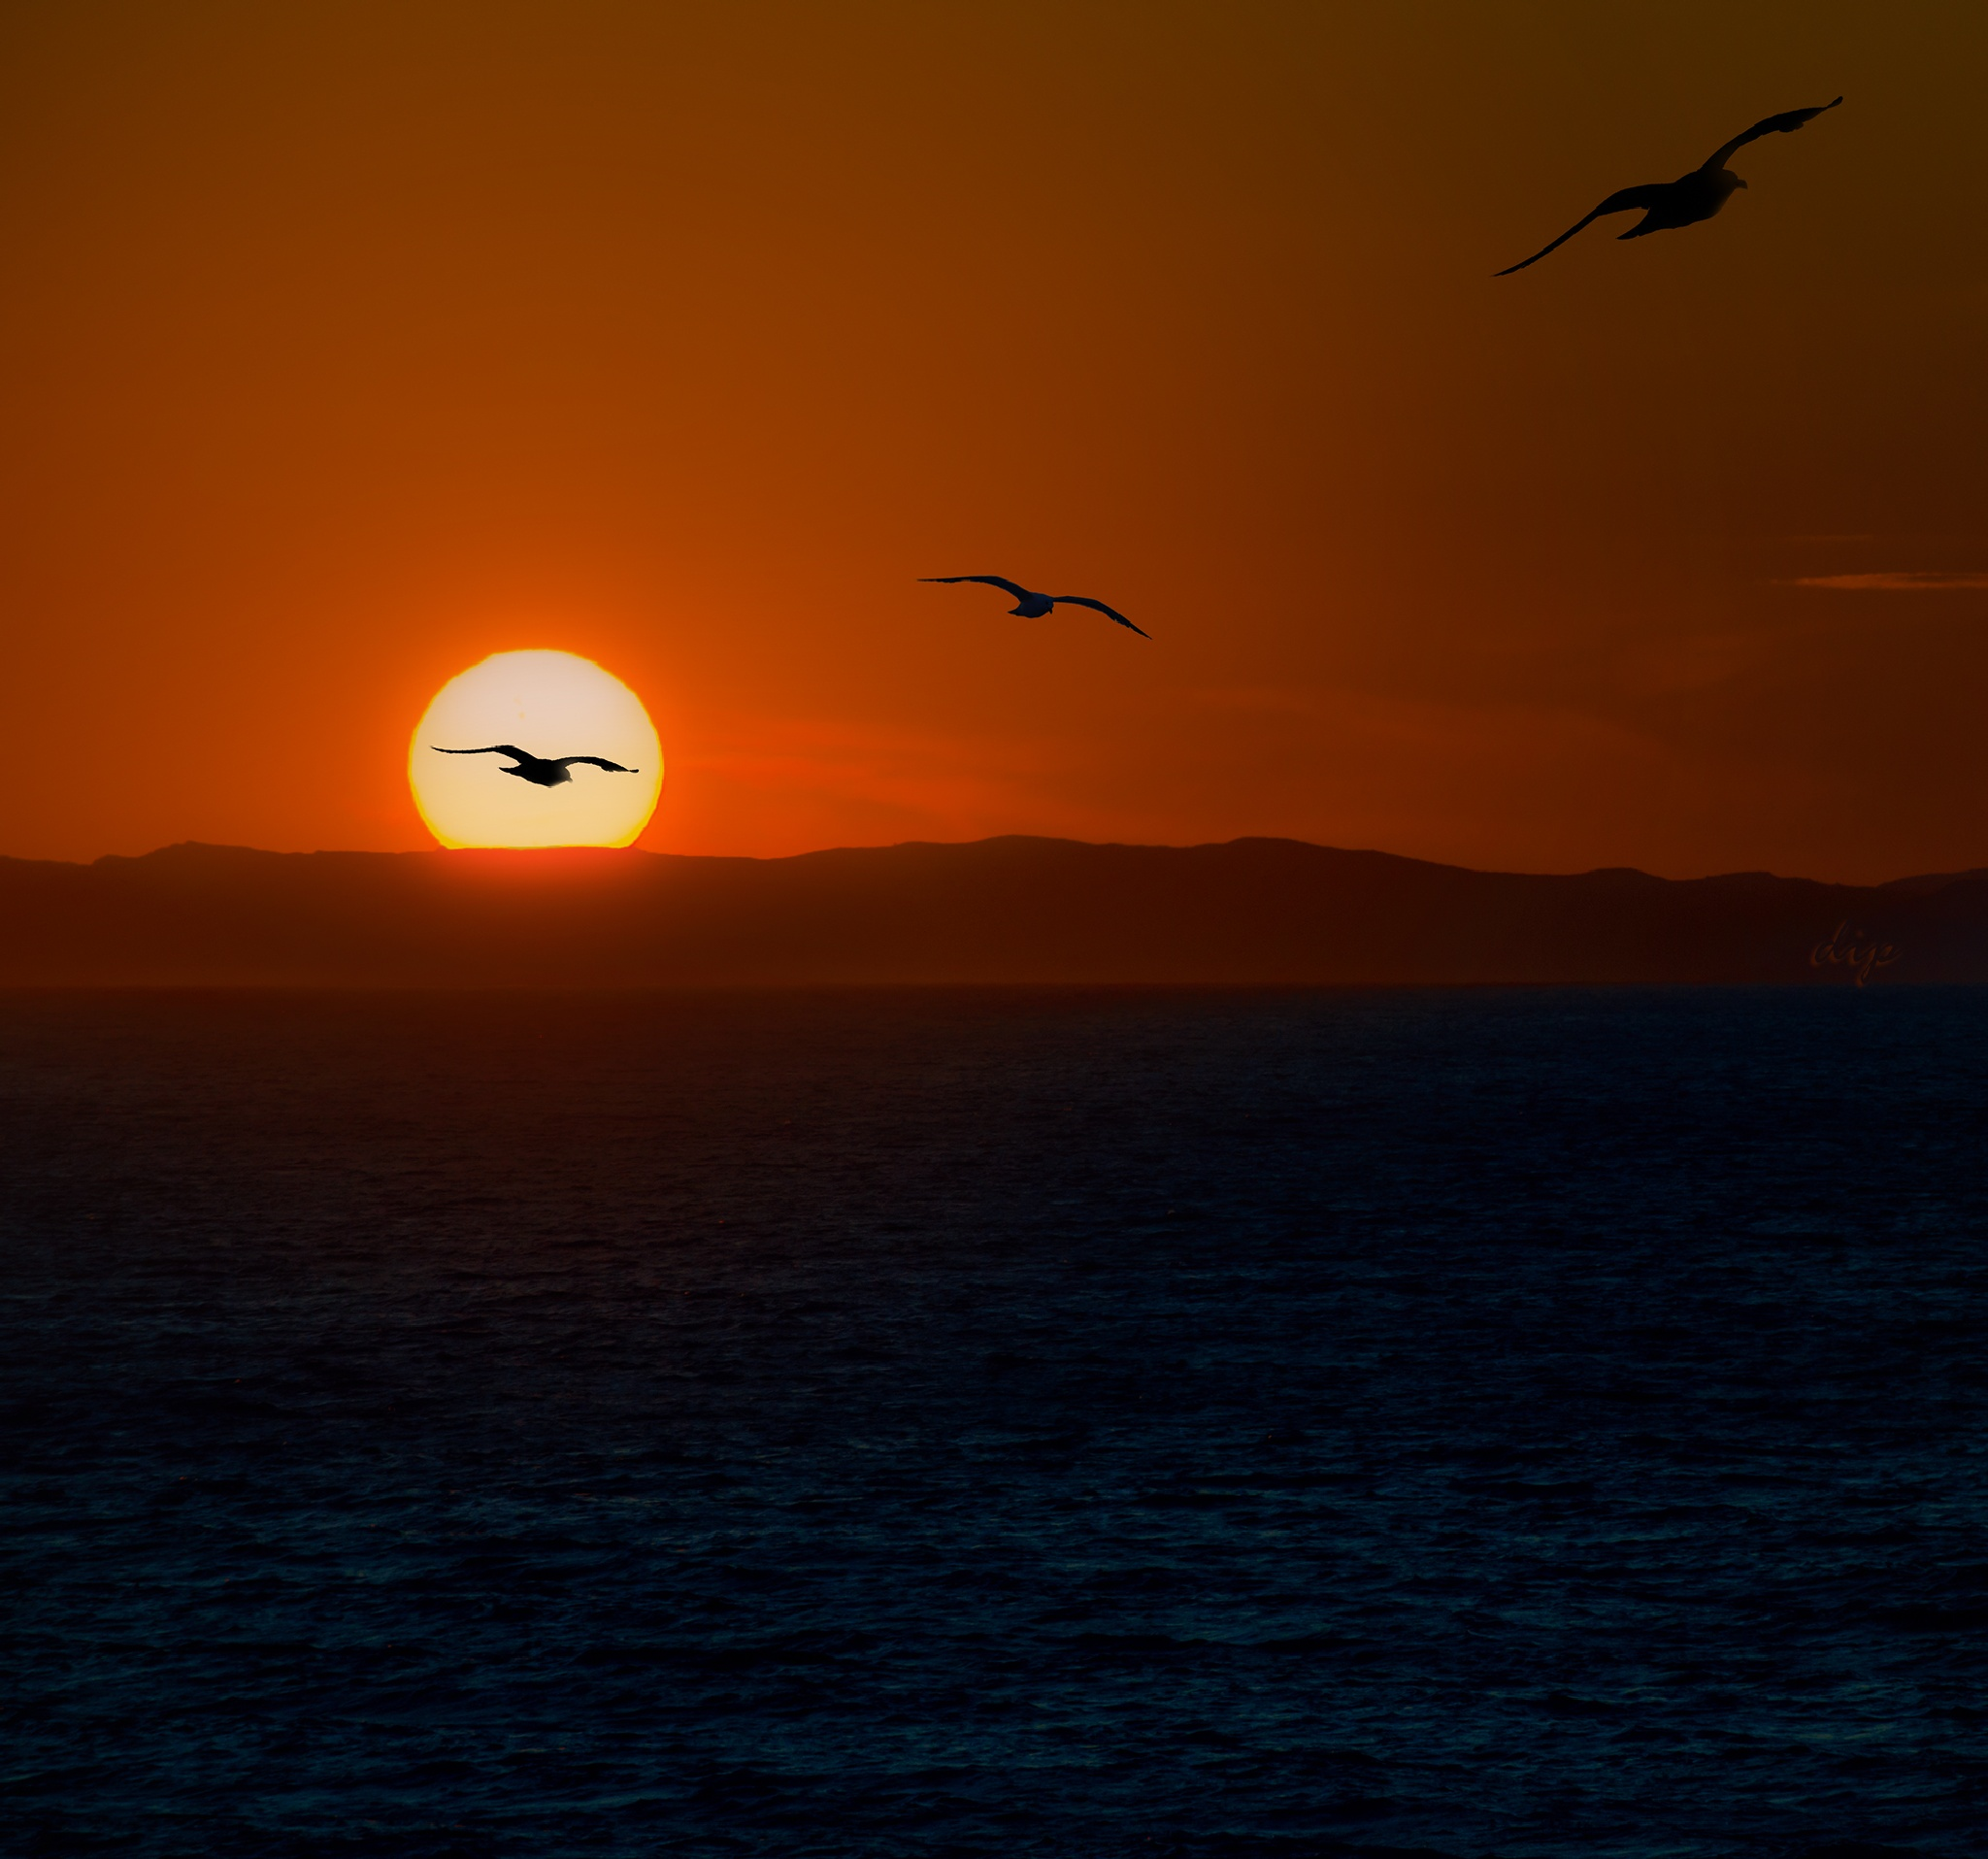 Seagulls at sunset... by dipphotos